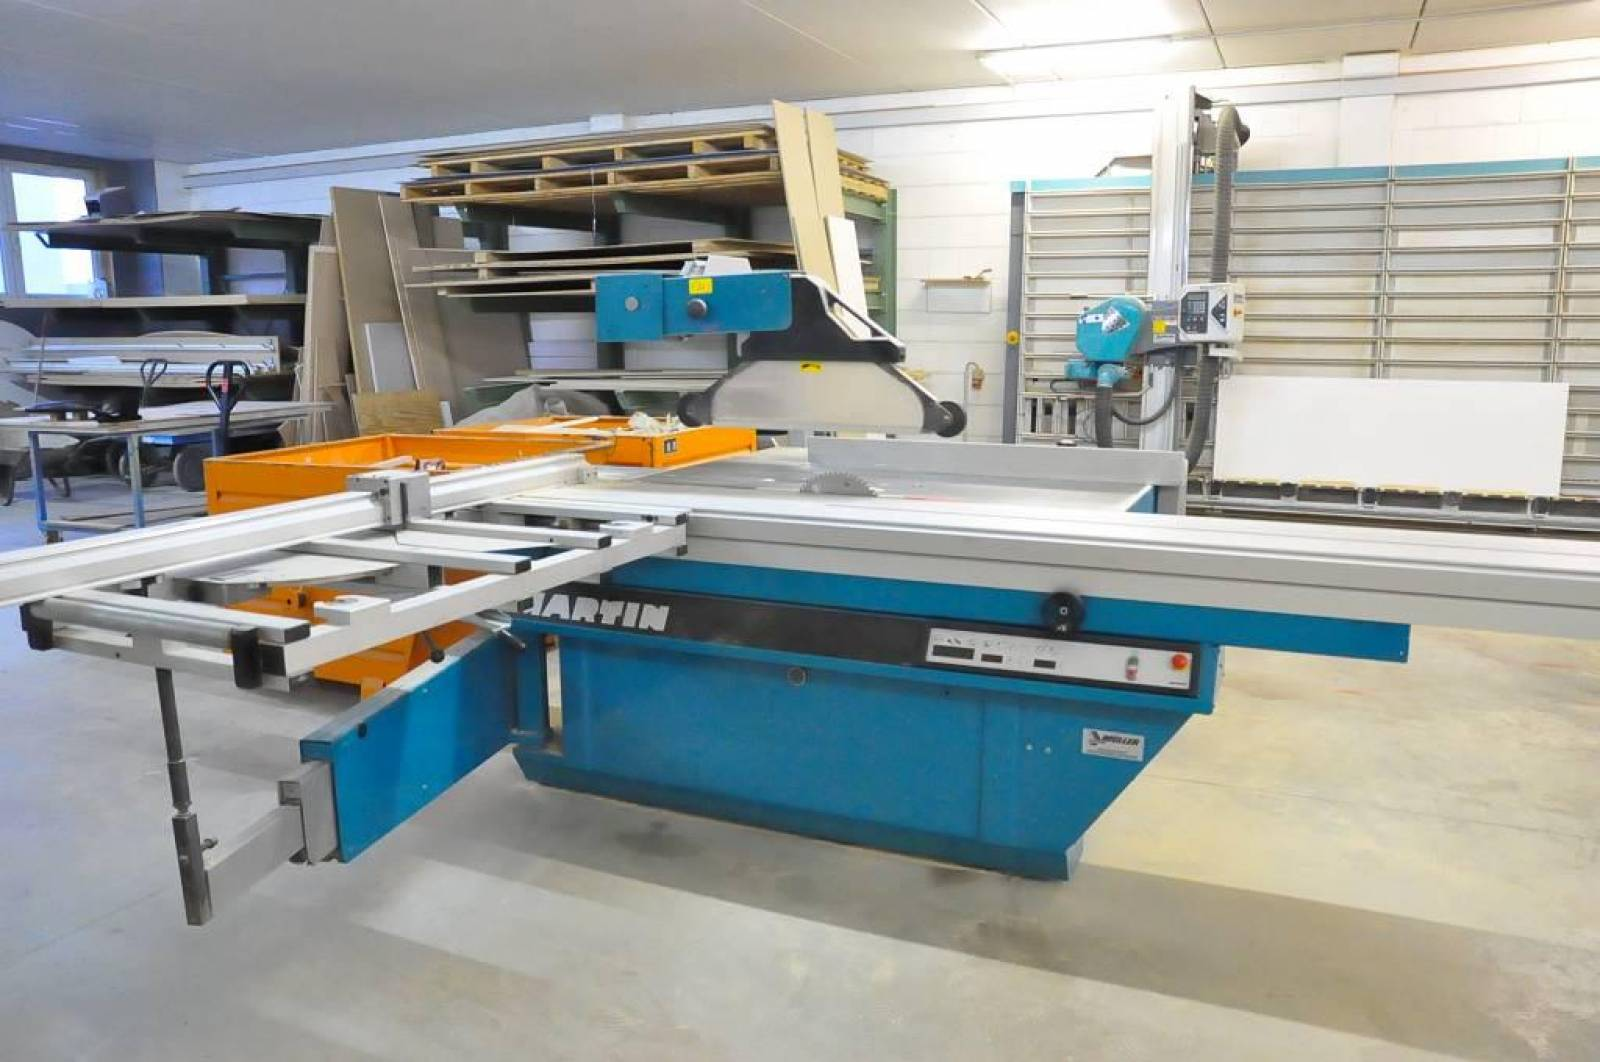 Sliding table saw MARTIN T 73 CLASSIC buy second-hand